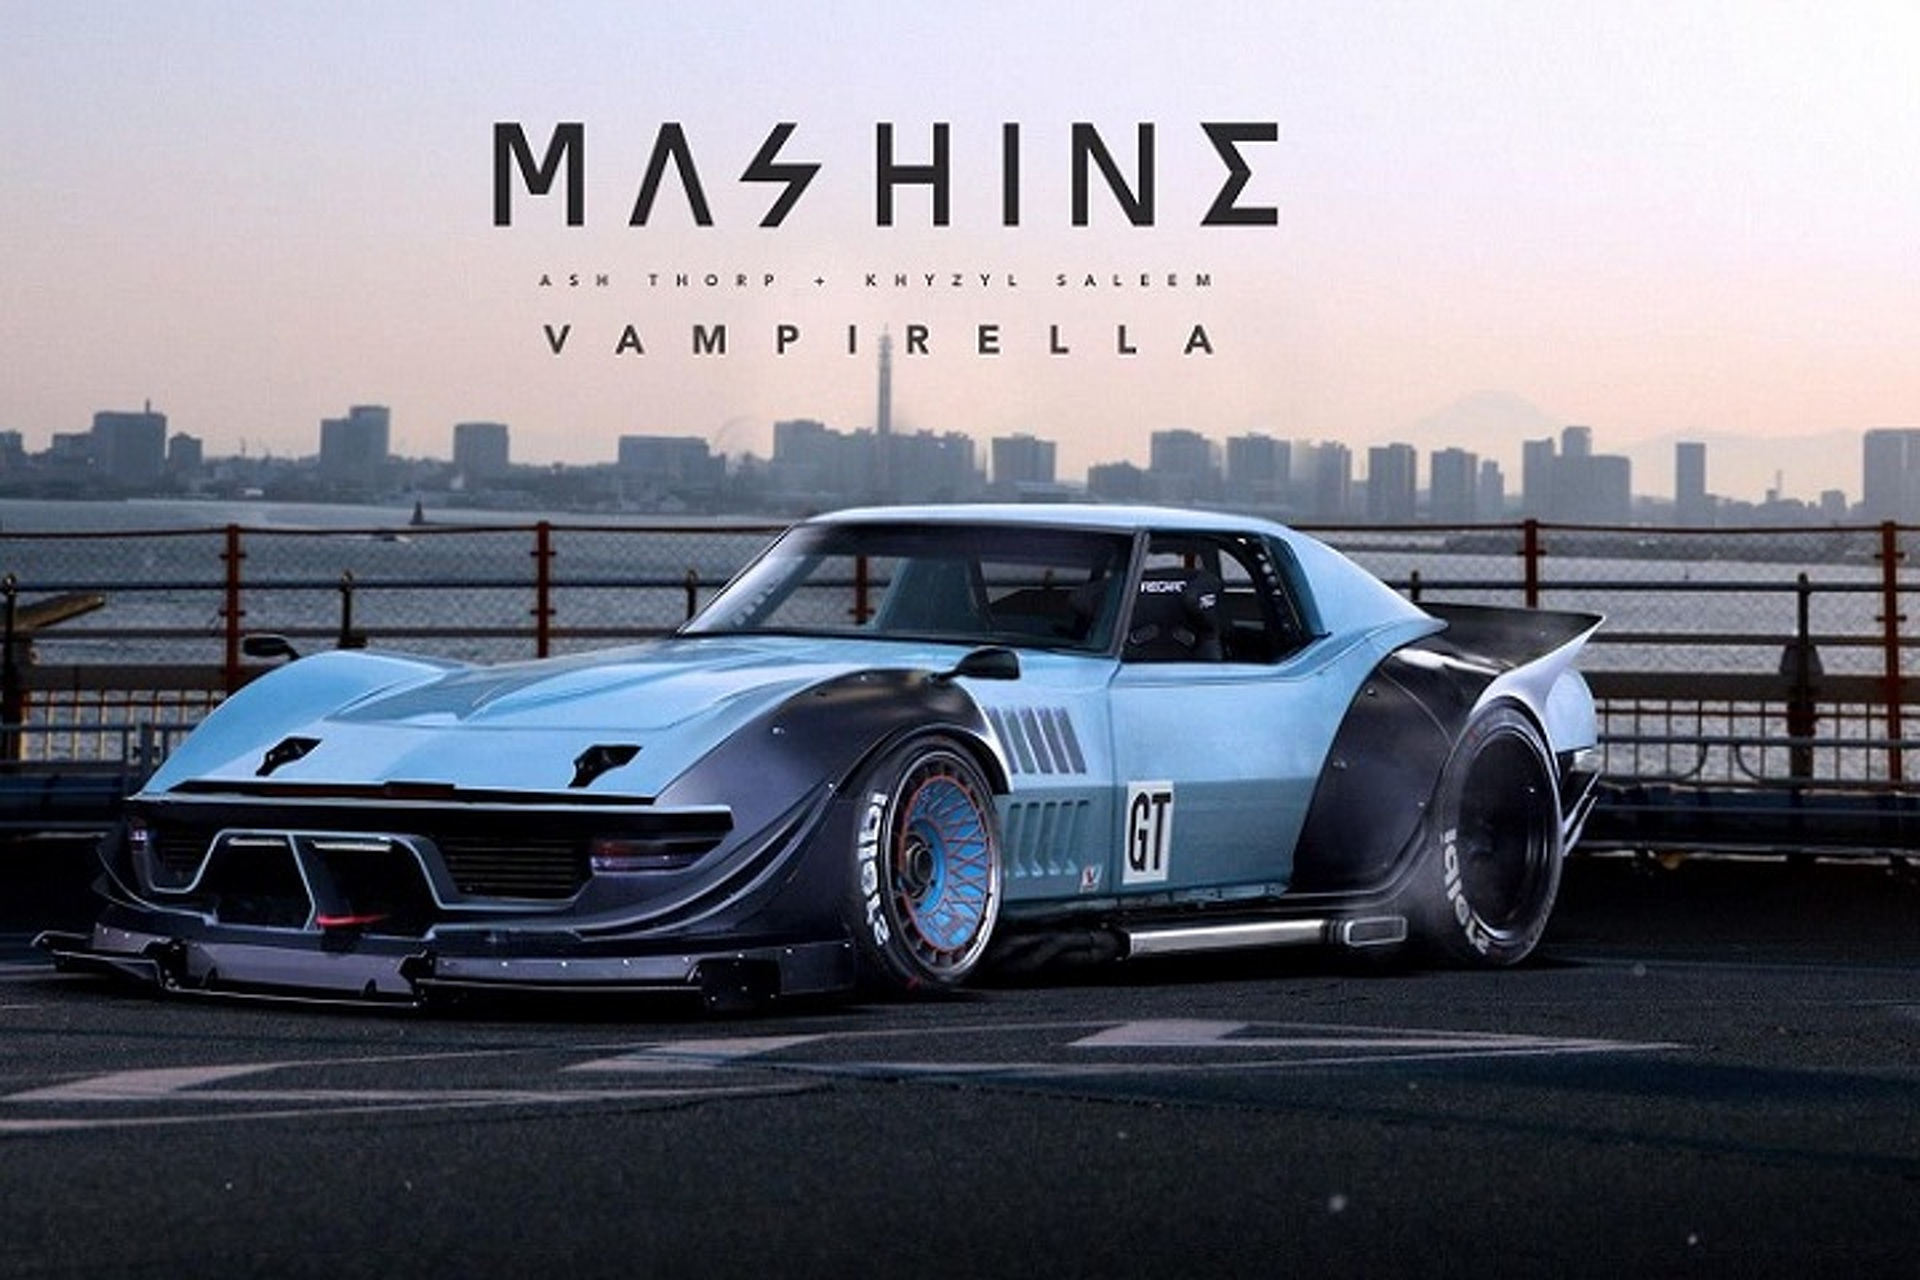 Check Out These Insane Bosozoku Versions of Classic Cars